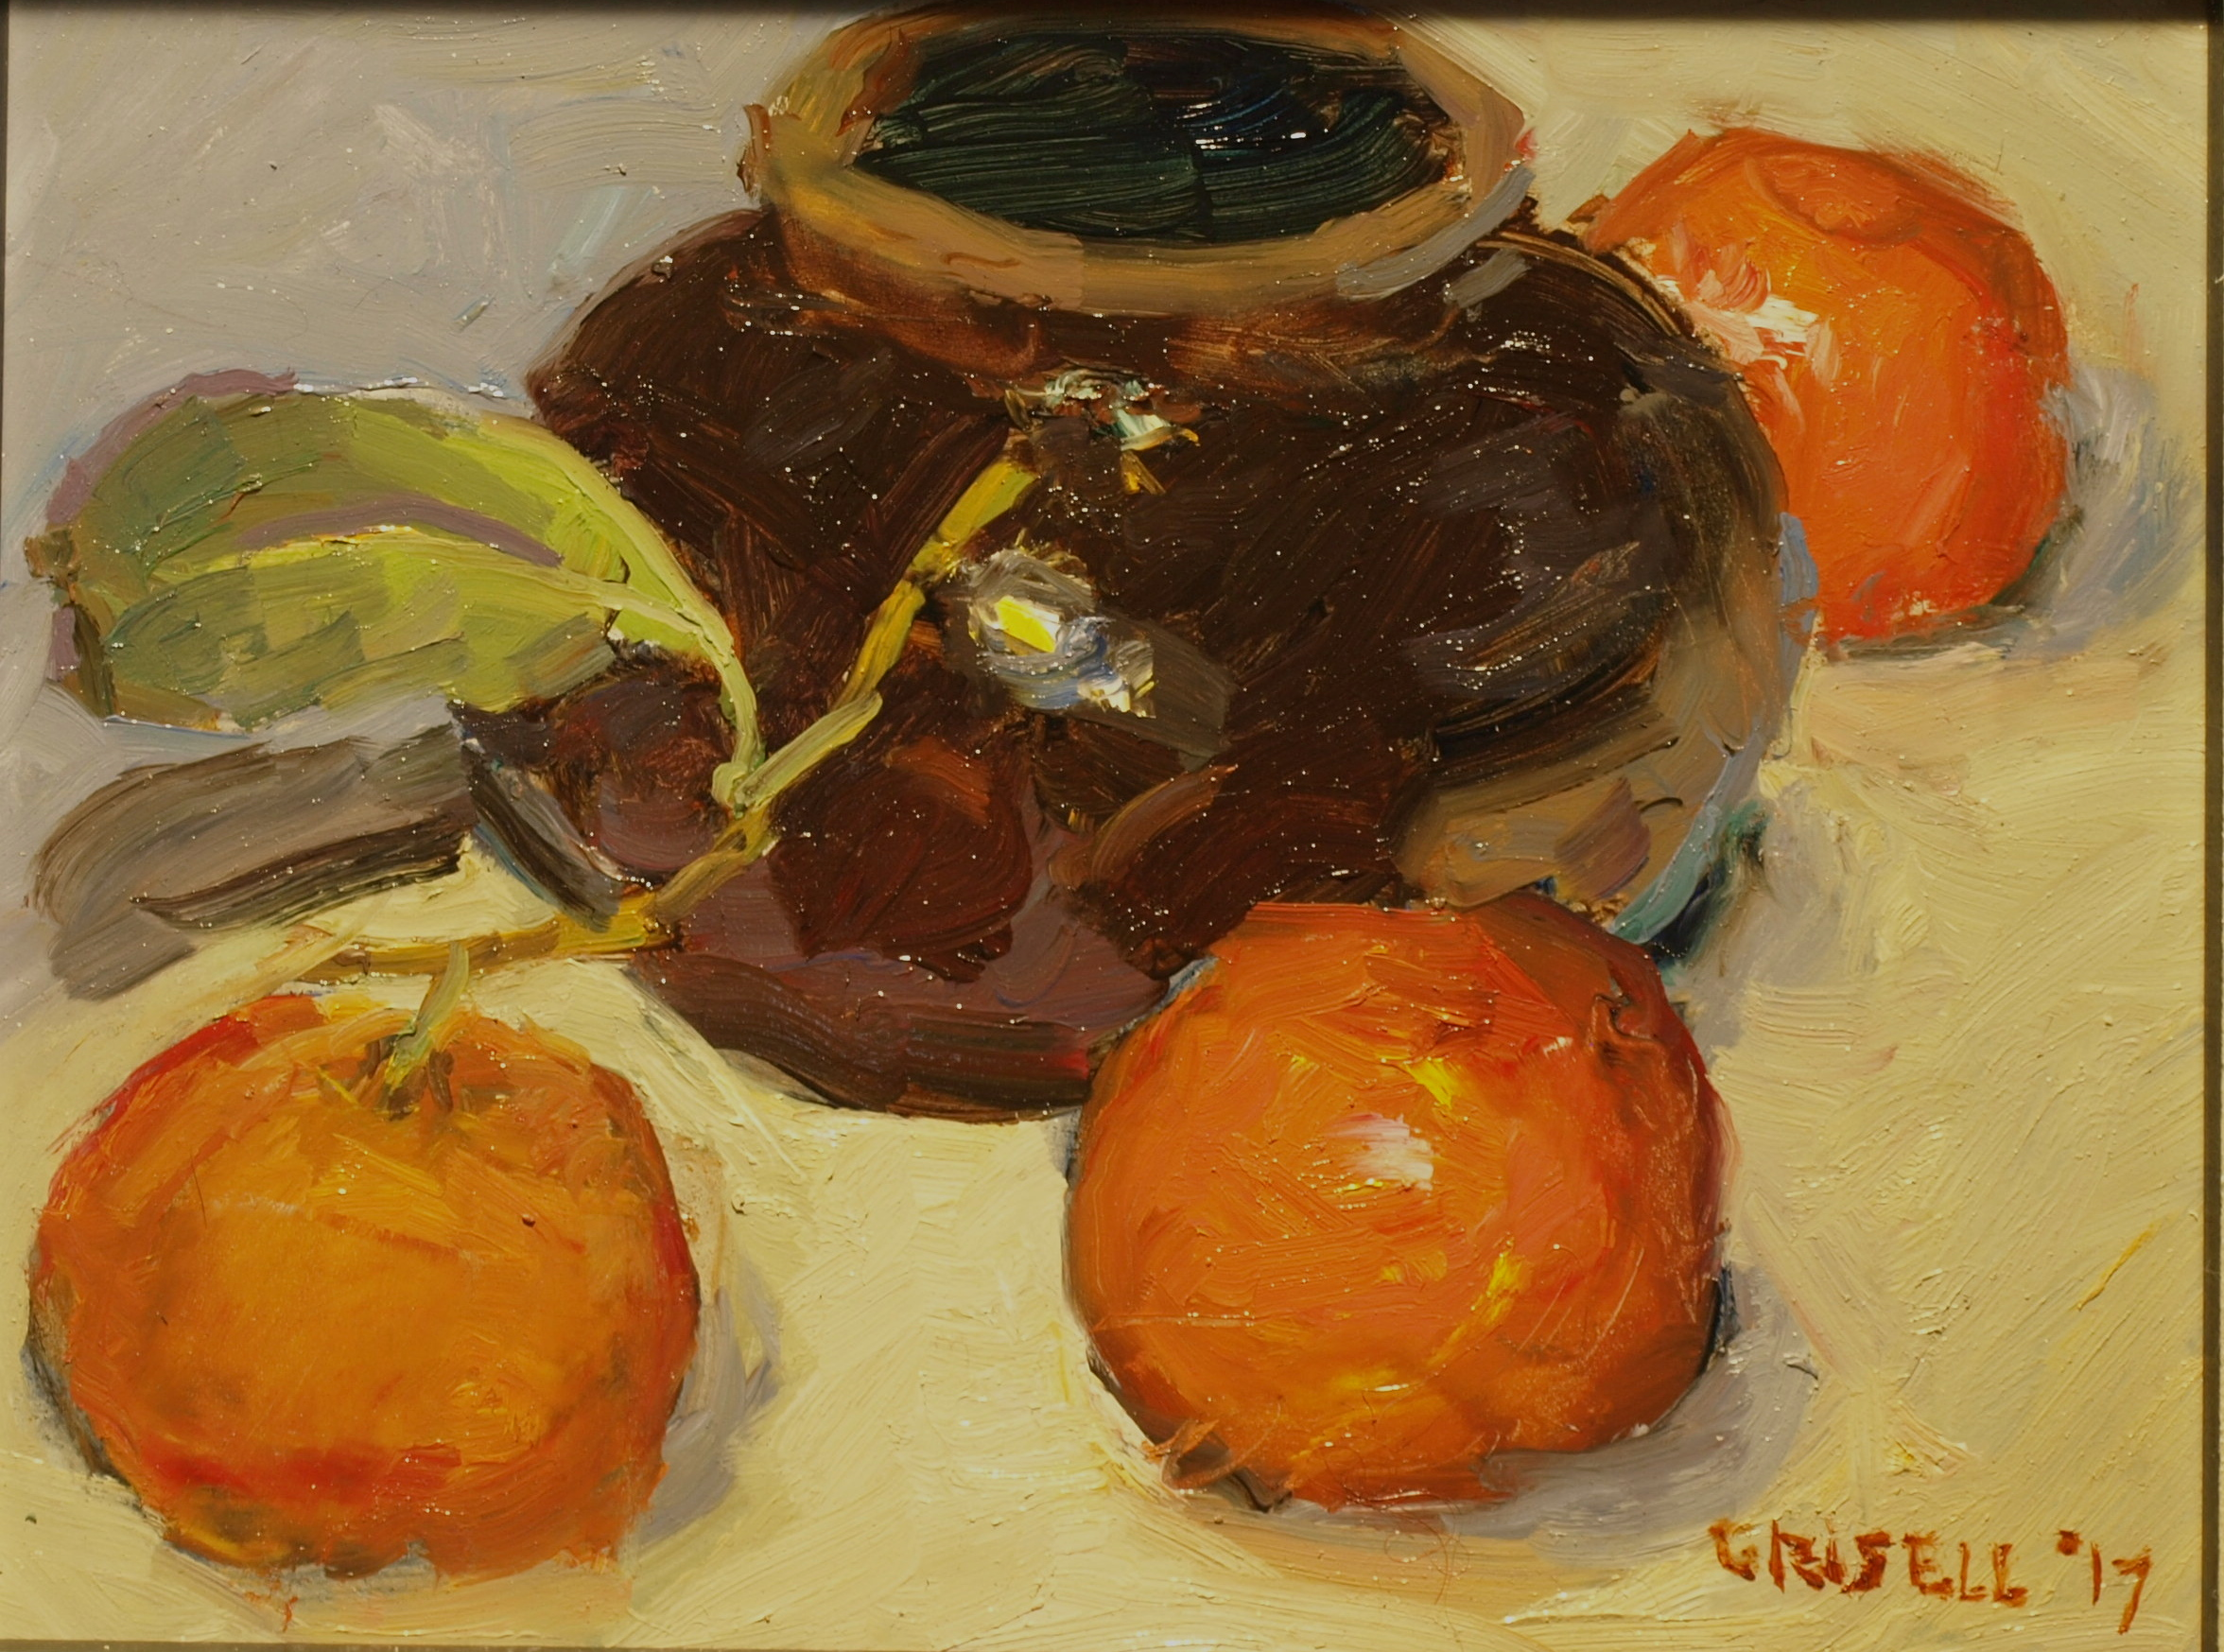 Pottery and Mandarins, Oil on Panel, 8 x 10 Inches, by Susan Grisell, $200